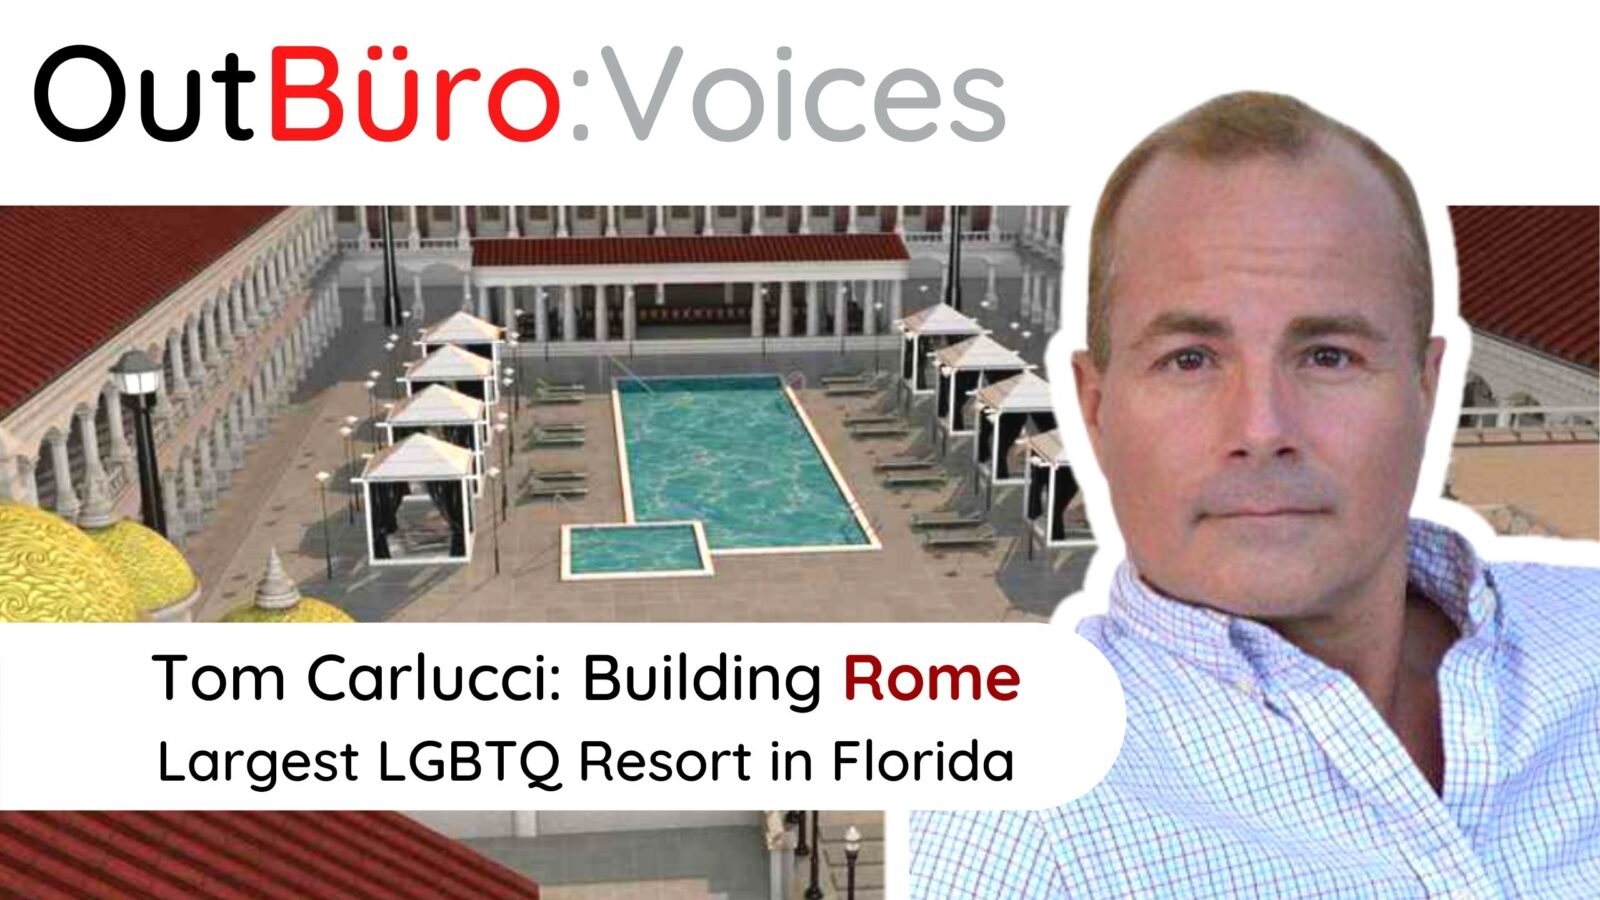 Tom Carlucci the Rome Ventur the largest gay resort in Florida LGBTQ Marketing Leader lgbt out gay entrepreneur lgbtq business owners lesbian queer community OutBuro